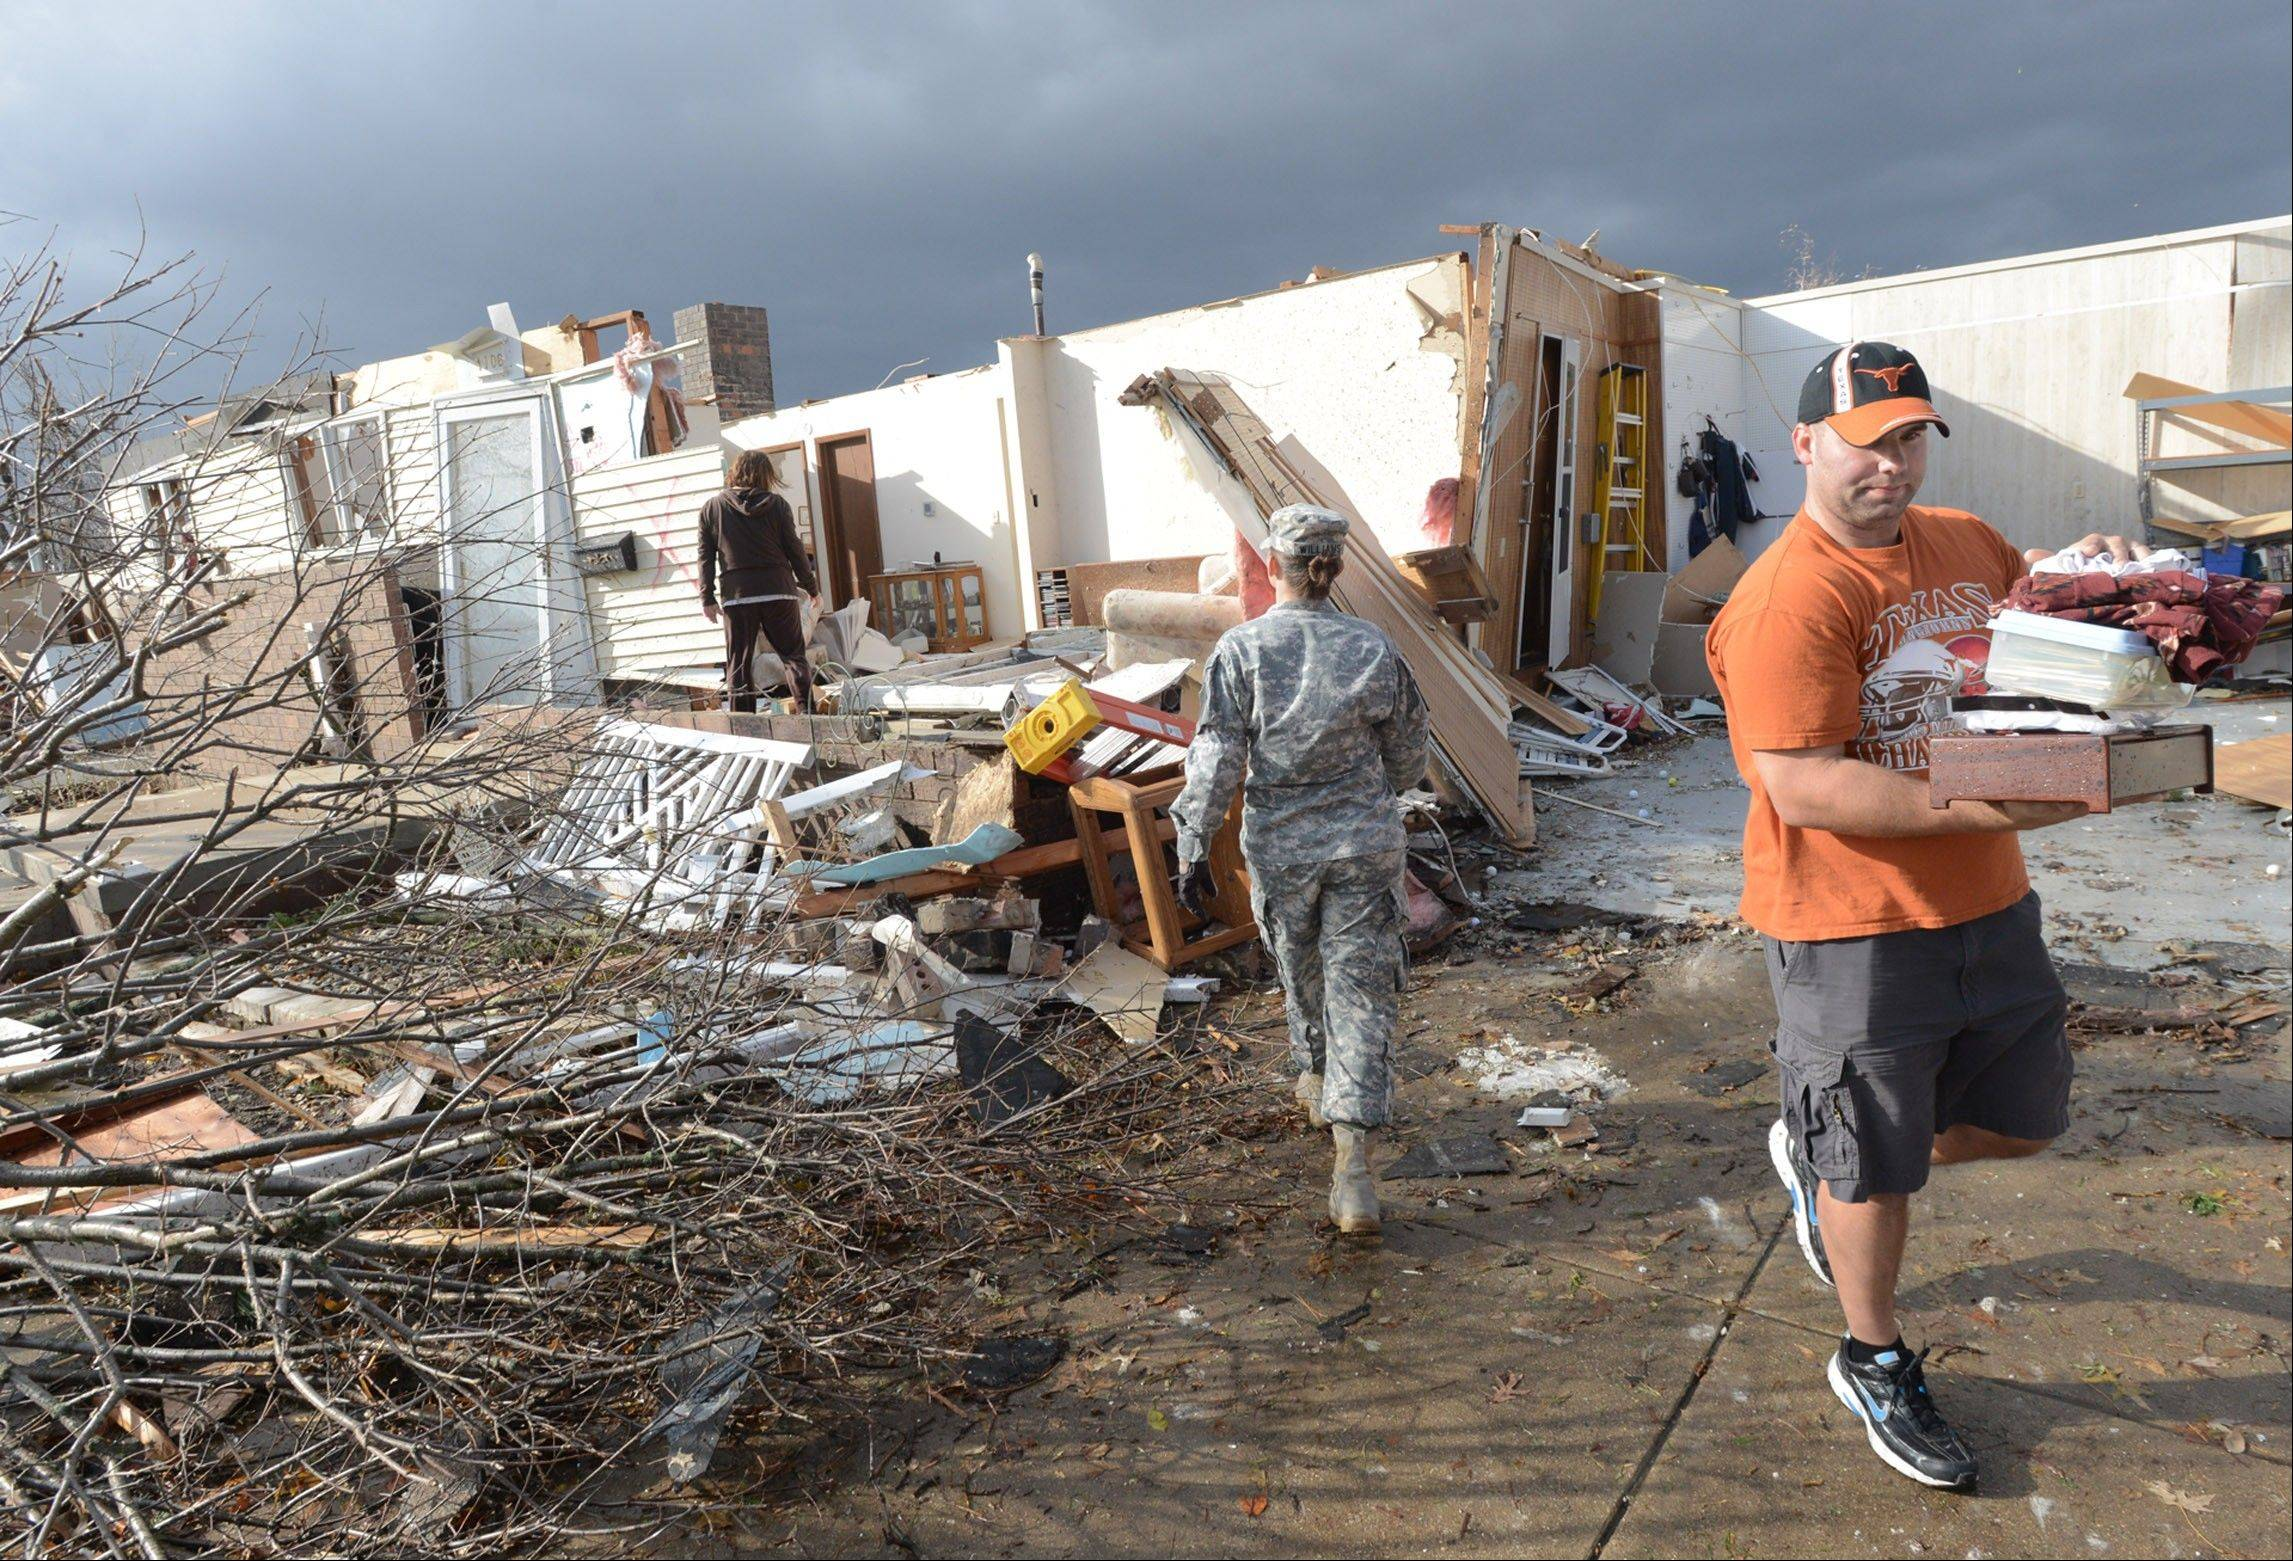 U.S. Army National Guard Master Sergeant Katie Williams of Altamont, center, walks to the destroyed home of Barb and John Evans in the Devonshire Subdivision in Washington as relatives rescue belongings after a tornado destroyed several homes on Sunday.